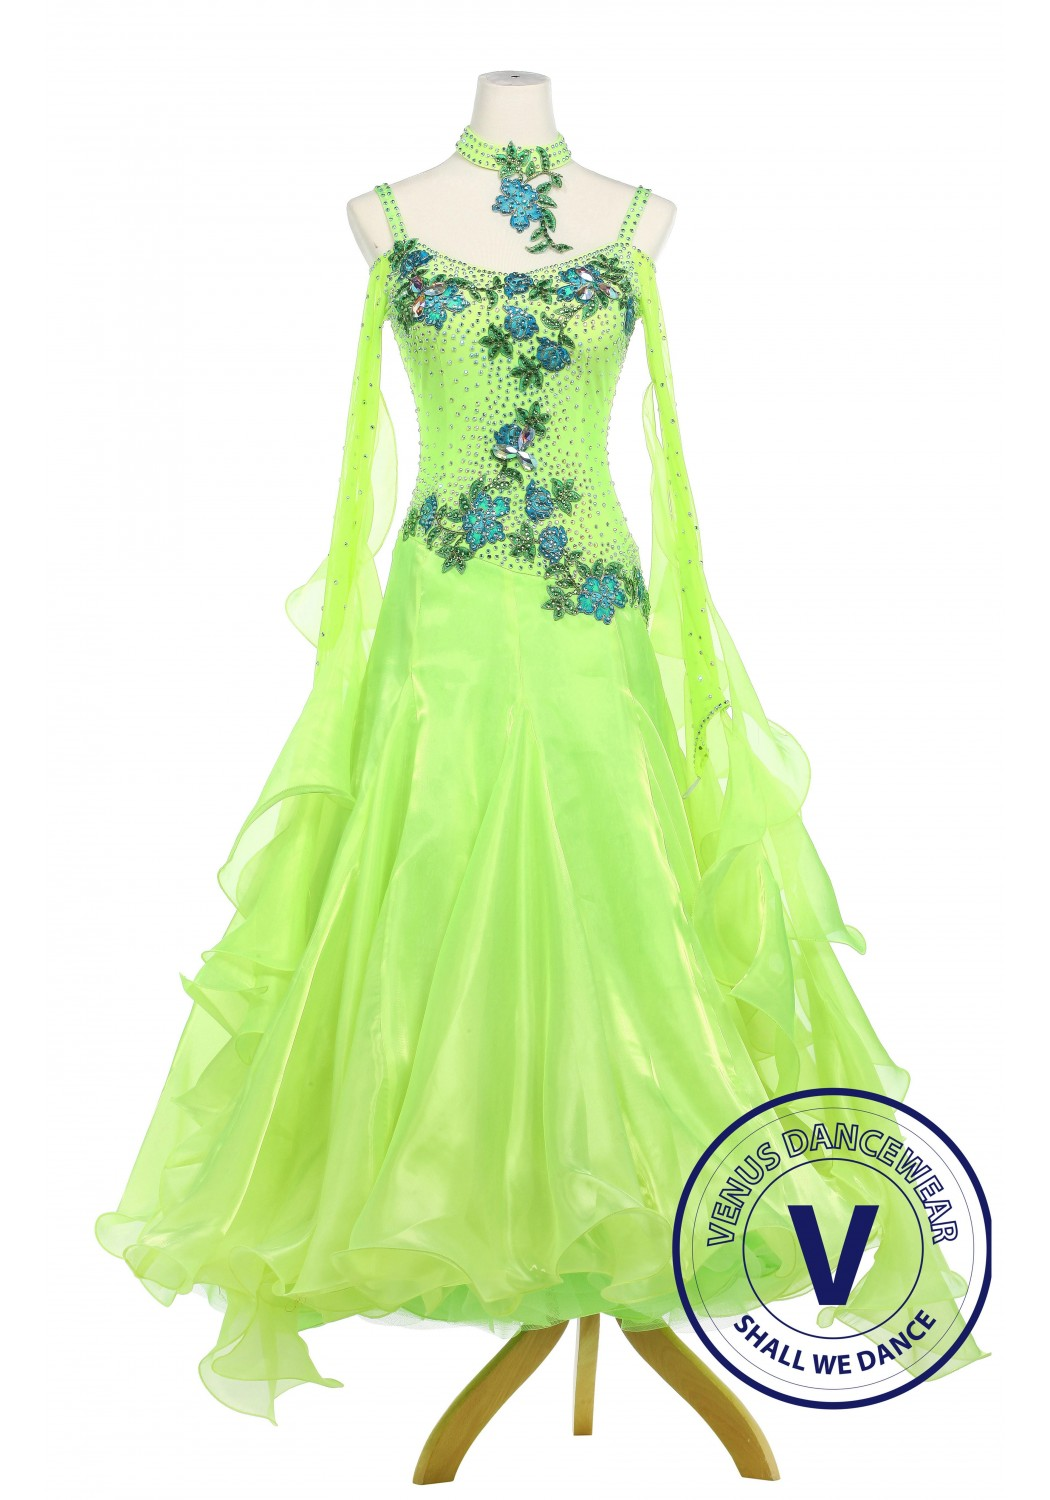 Grass Green Smooth Standard Ballroom Dance Competition Dress